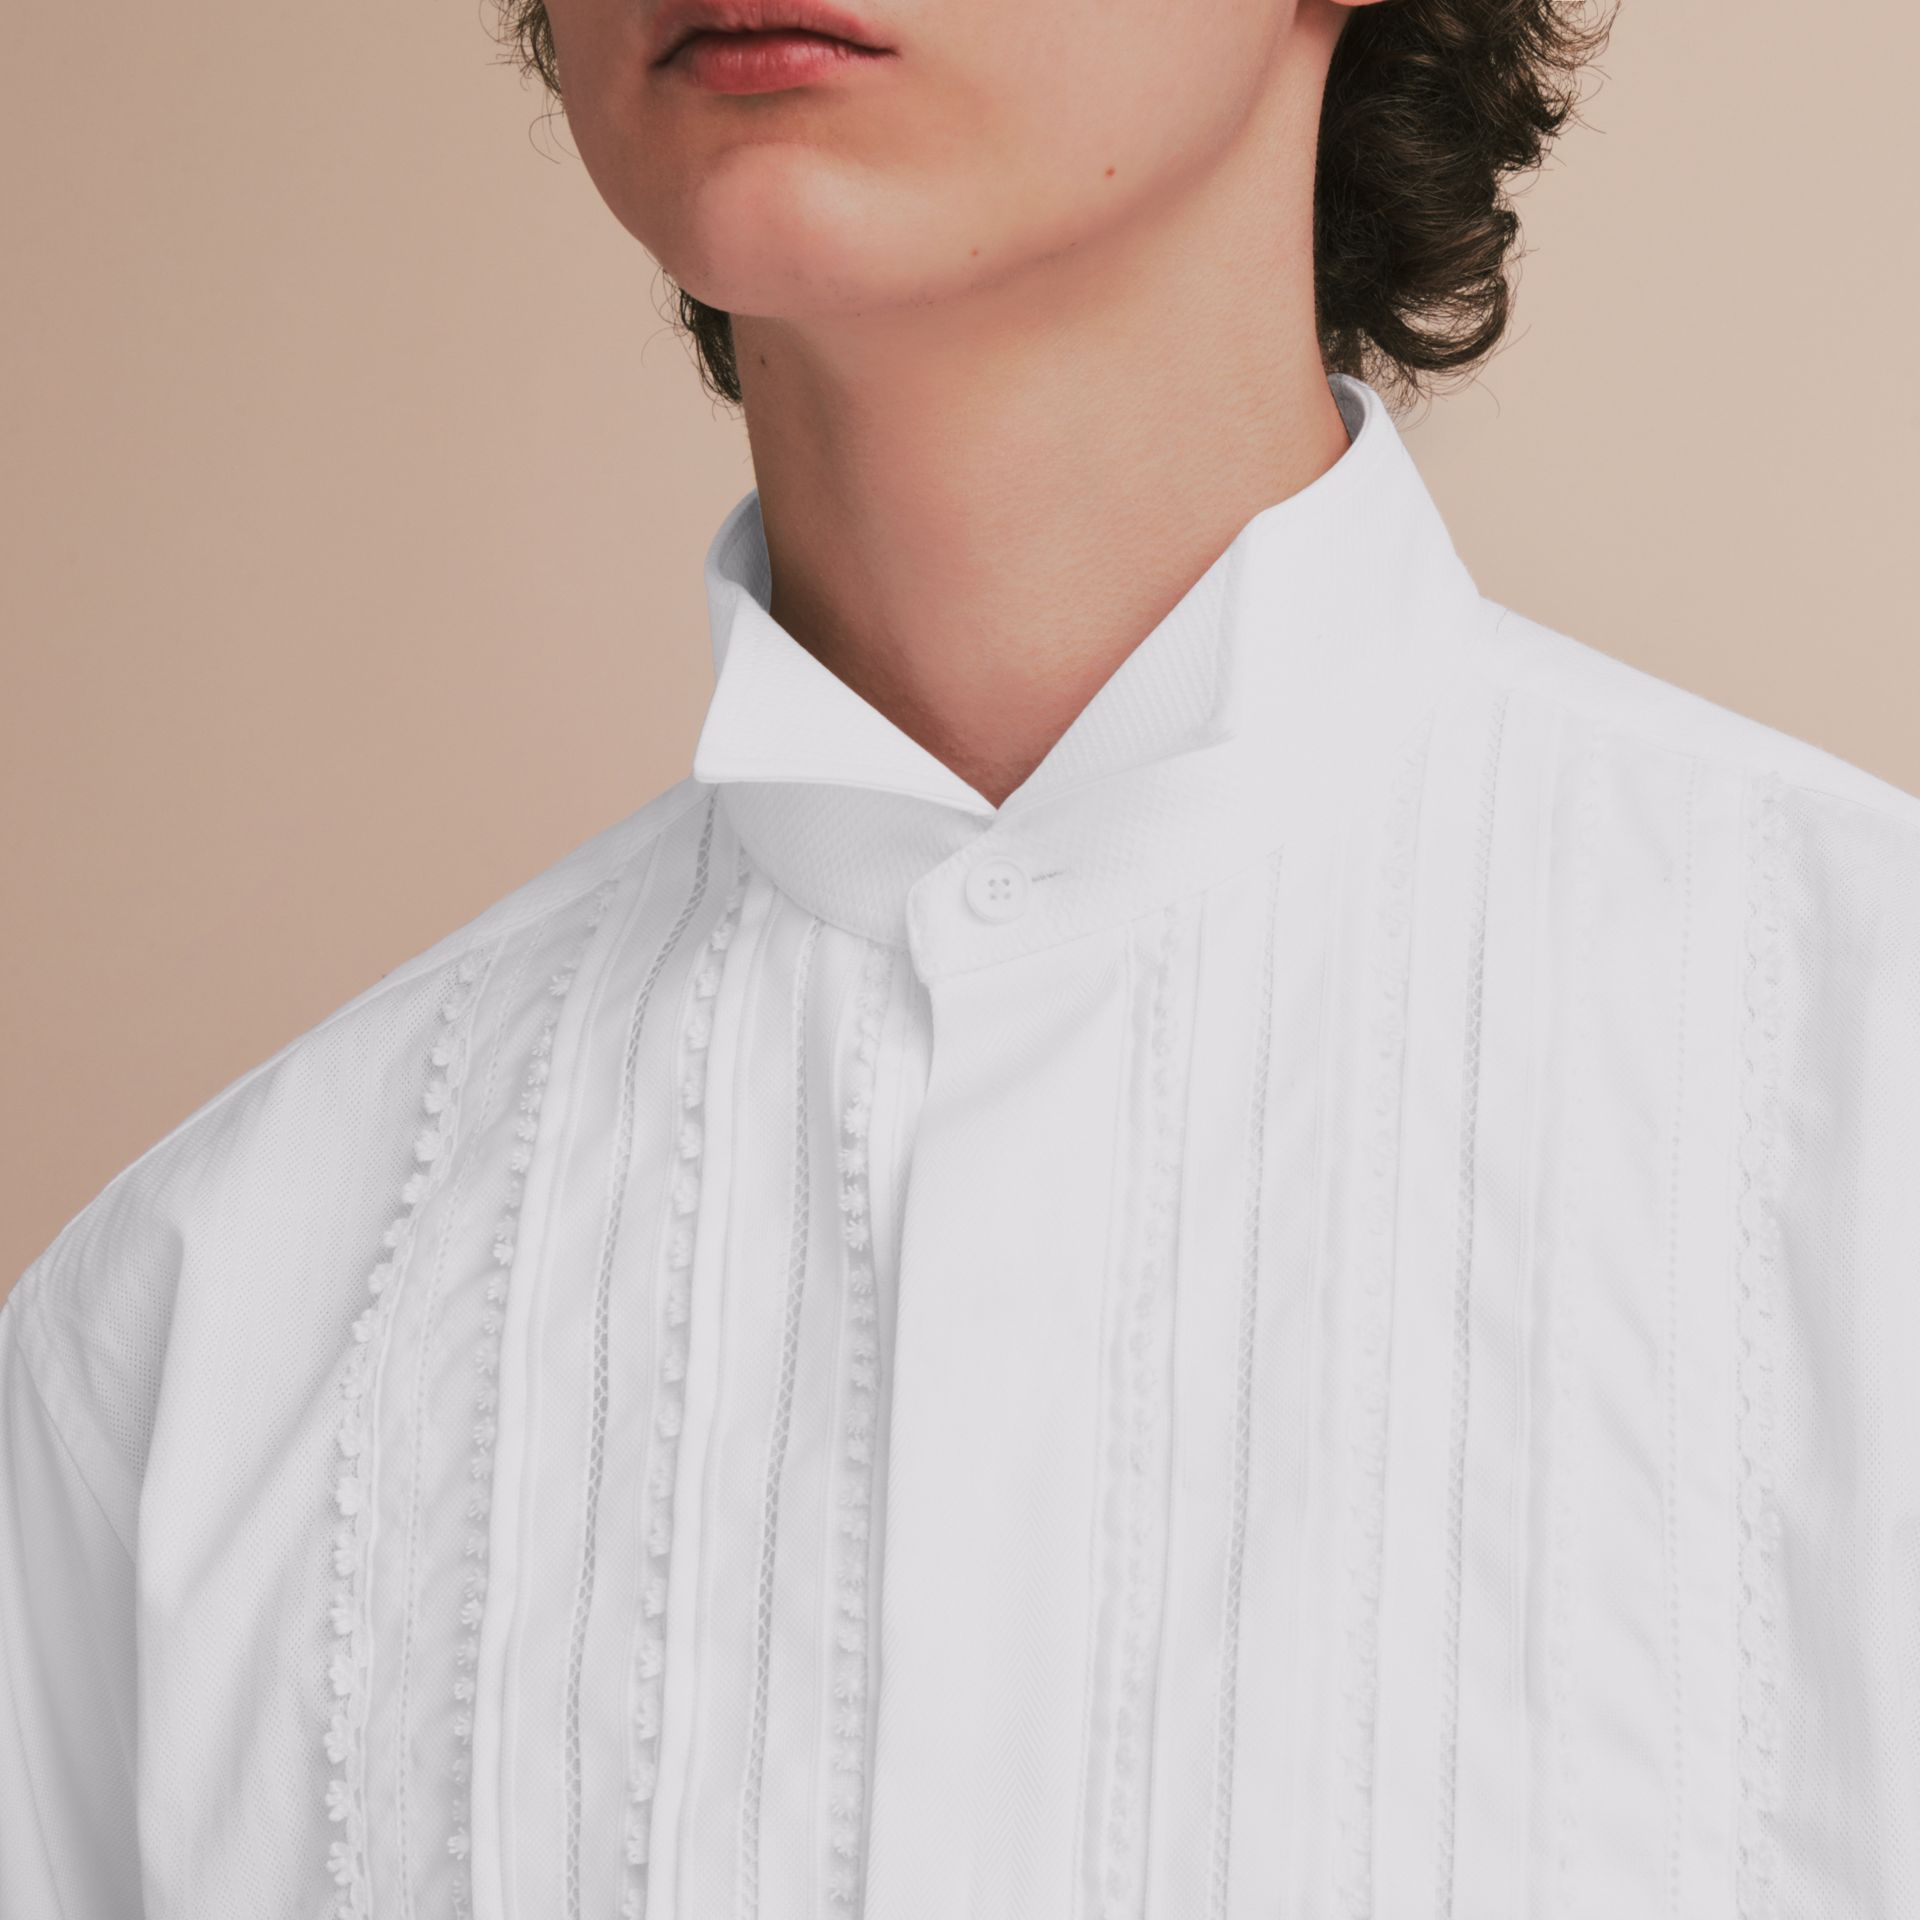 Cotton Evening Shirt with Pintucks and Macramé Trim in White - Men | Burberry Australia - gallery image 5